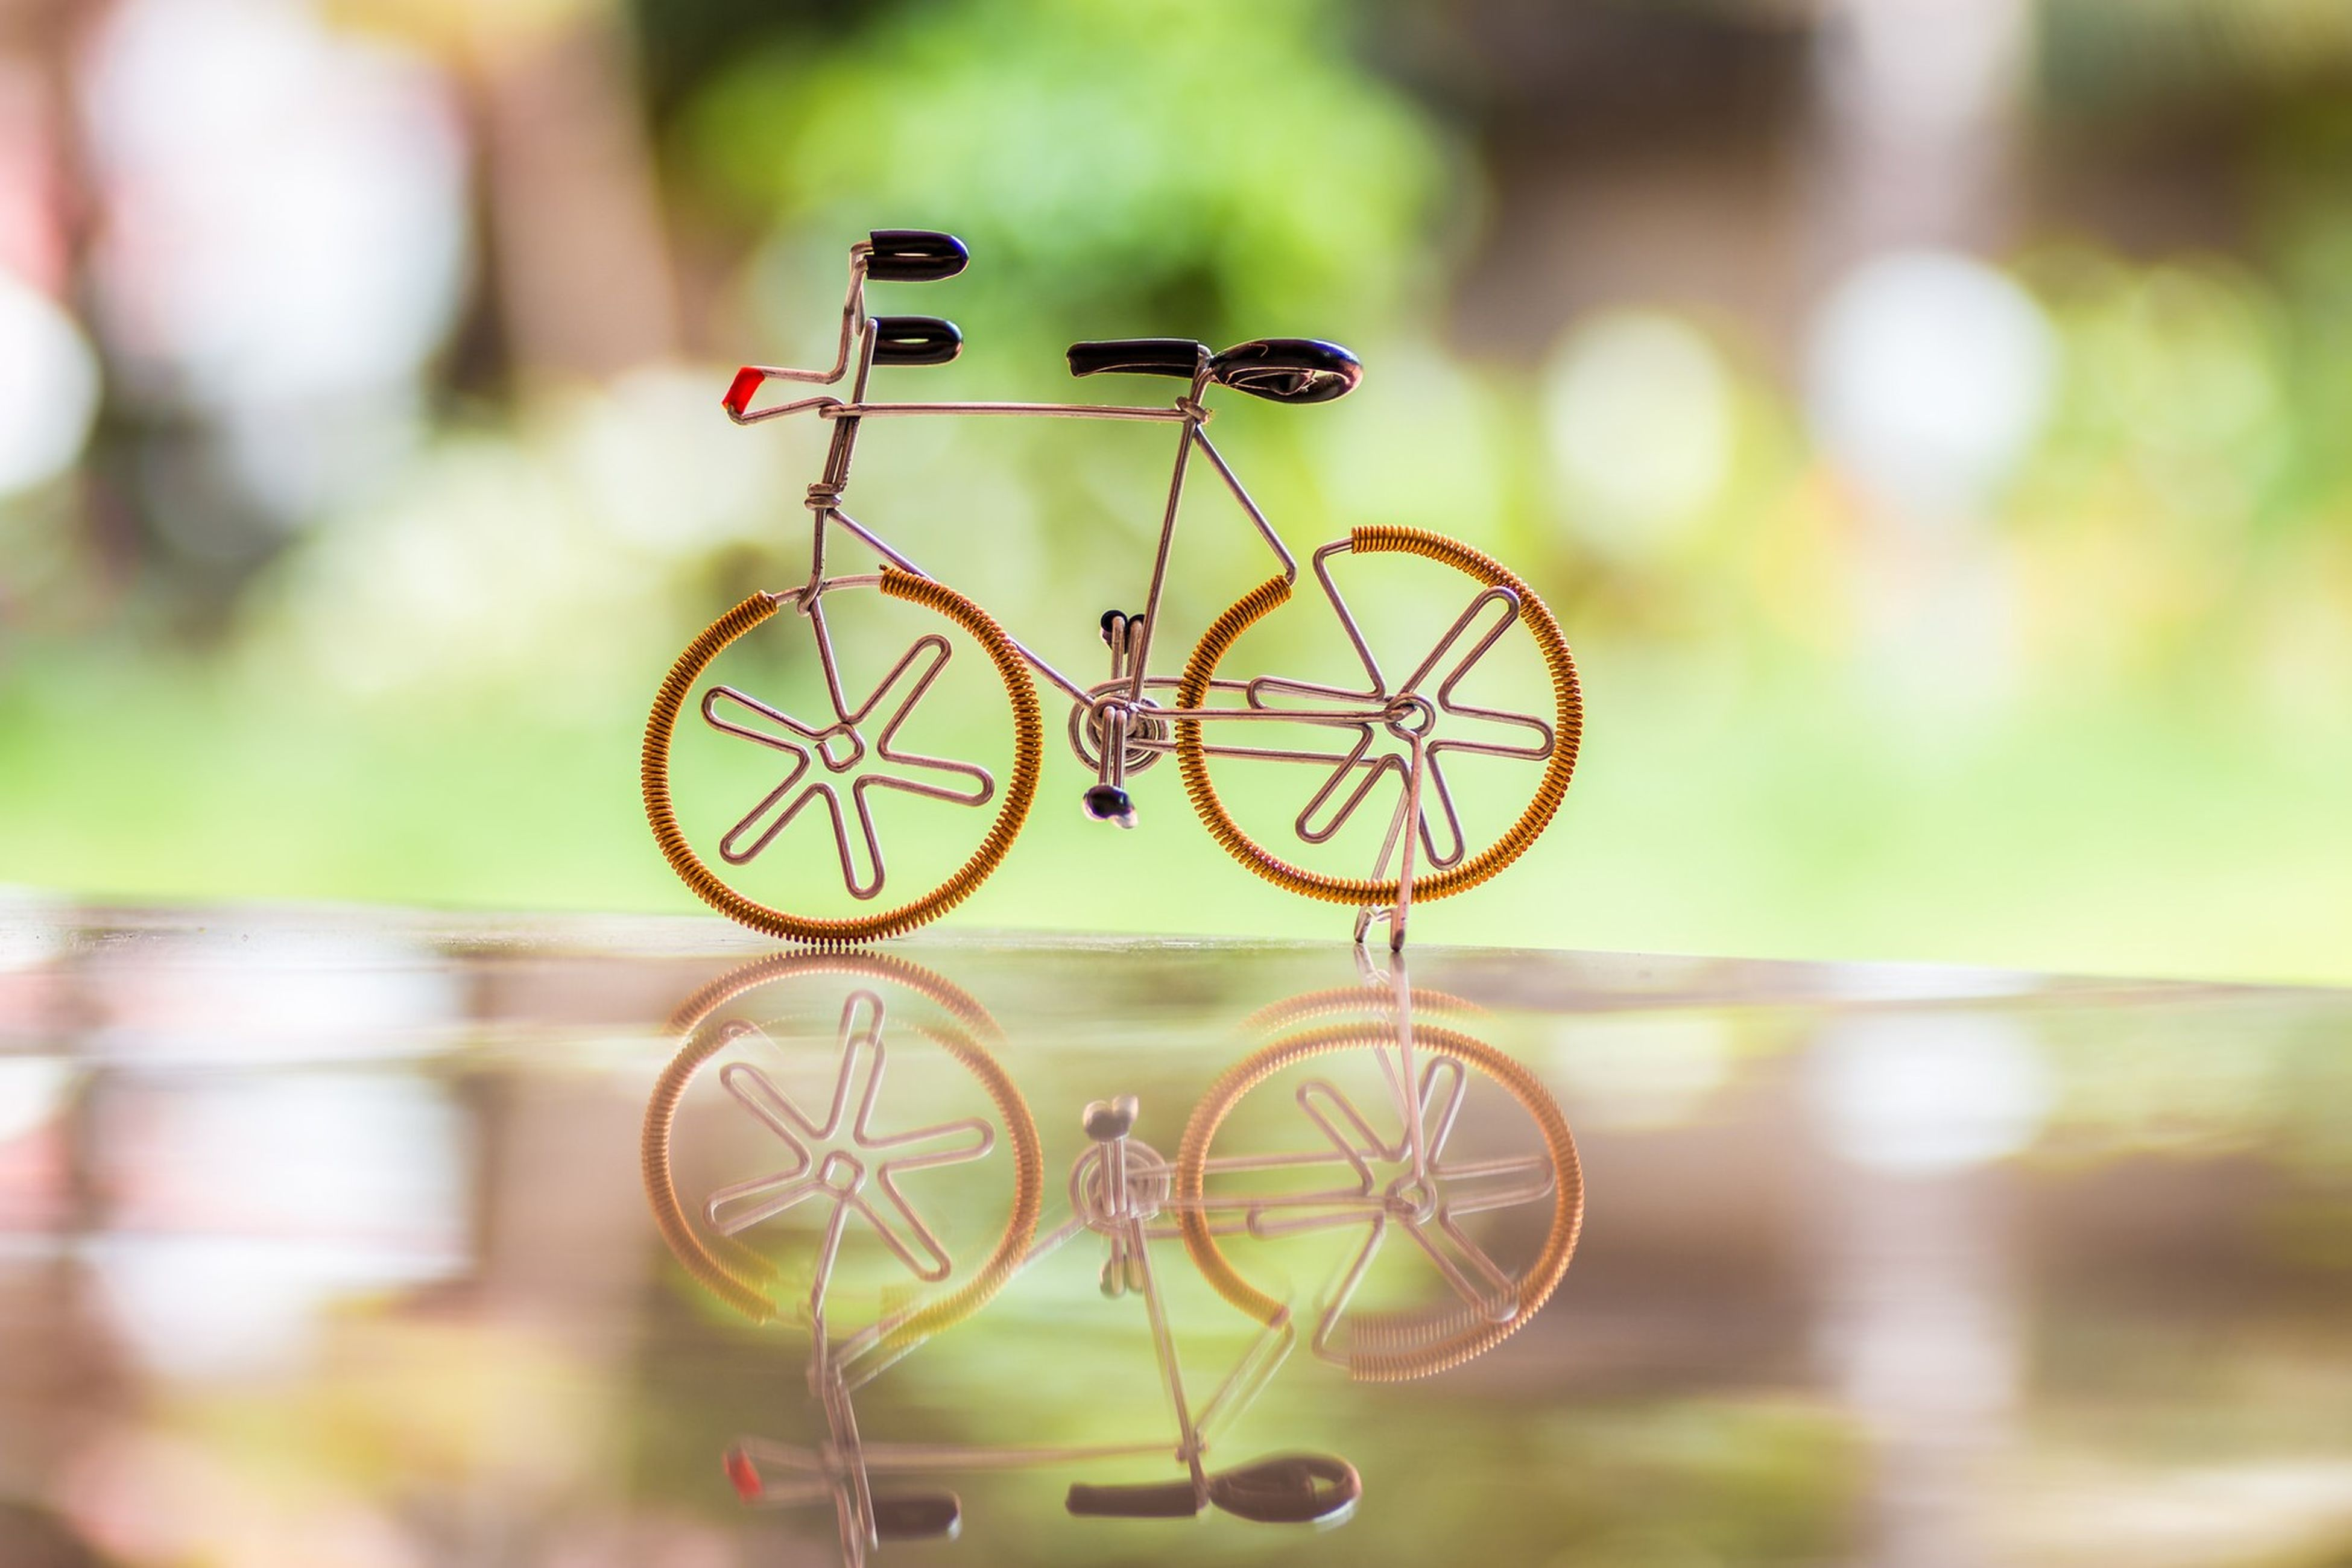 focus on foreground, close-up, metal, selective focus, circle, no people, metallic, bicycle, day, outdoors, railing, hanging, still life, pattern, fence, reflection, built structure, protection, man made object